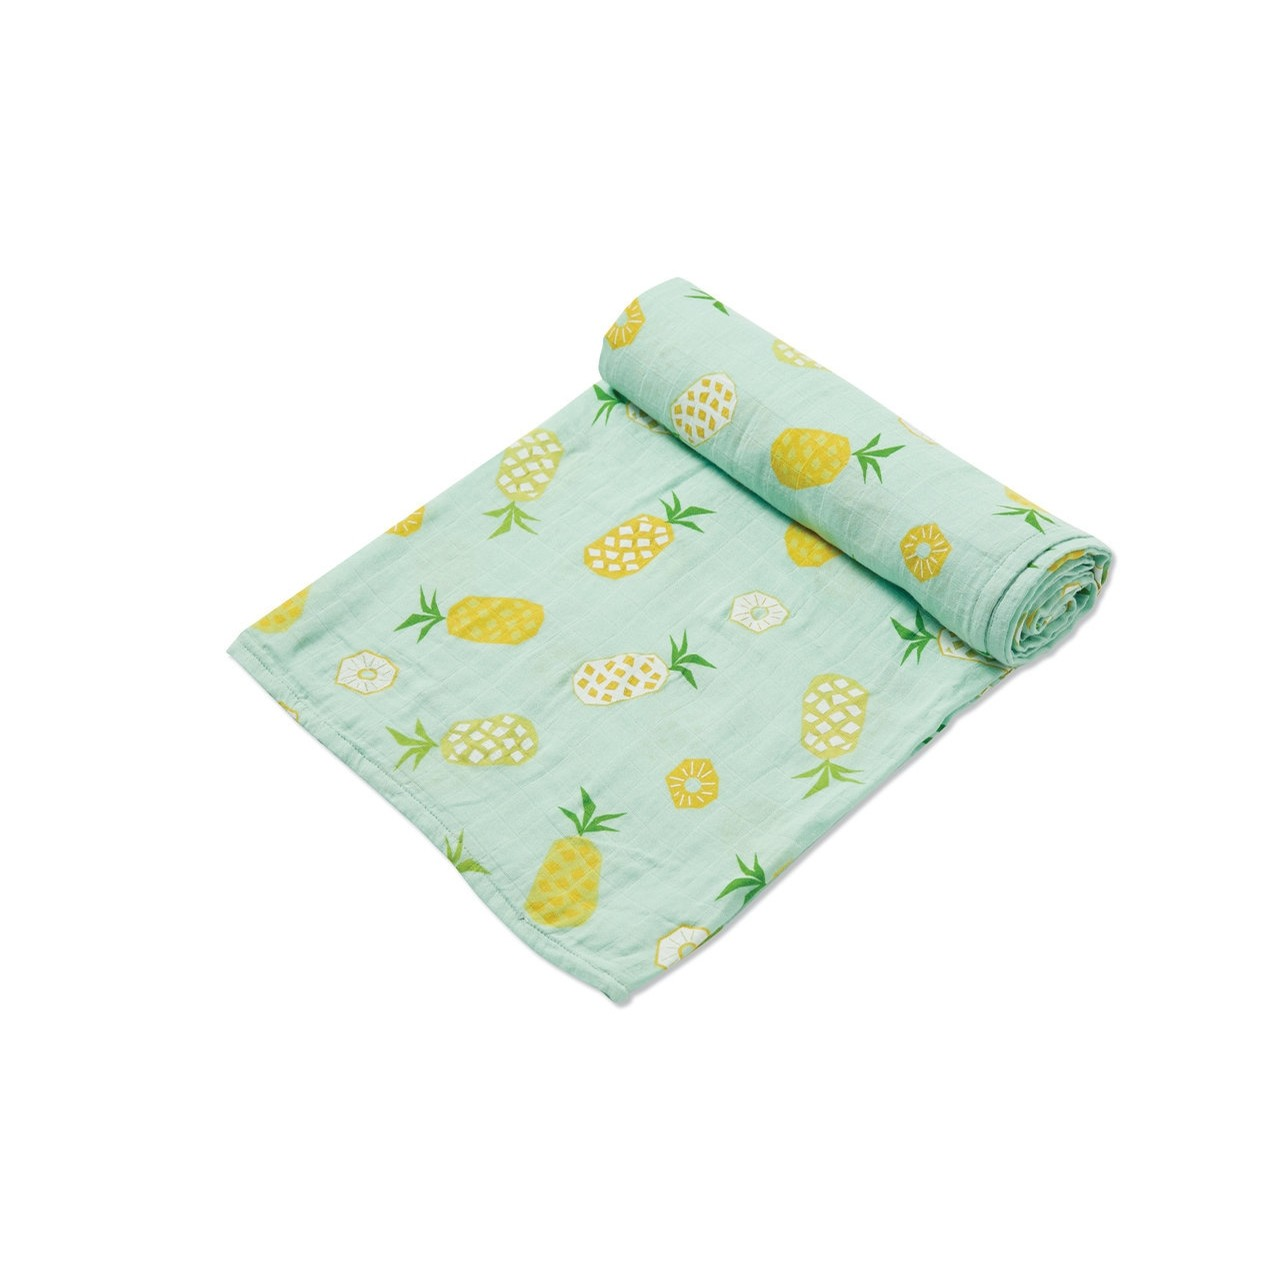 Swaddle Blanket - Pineapple